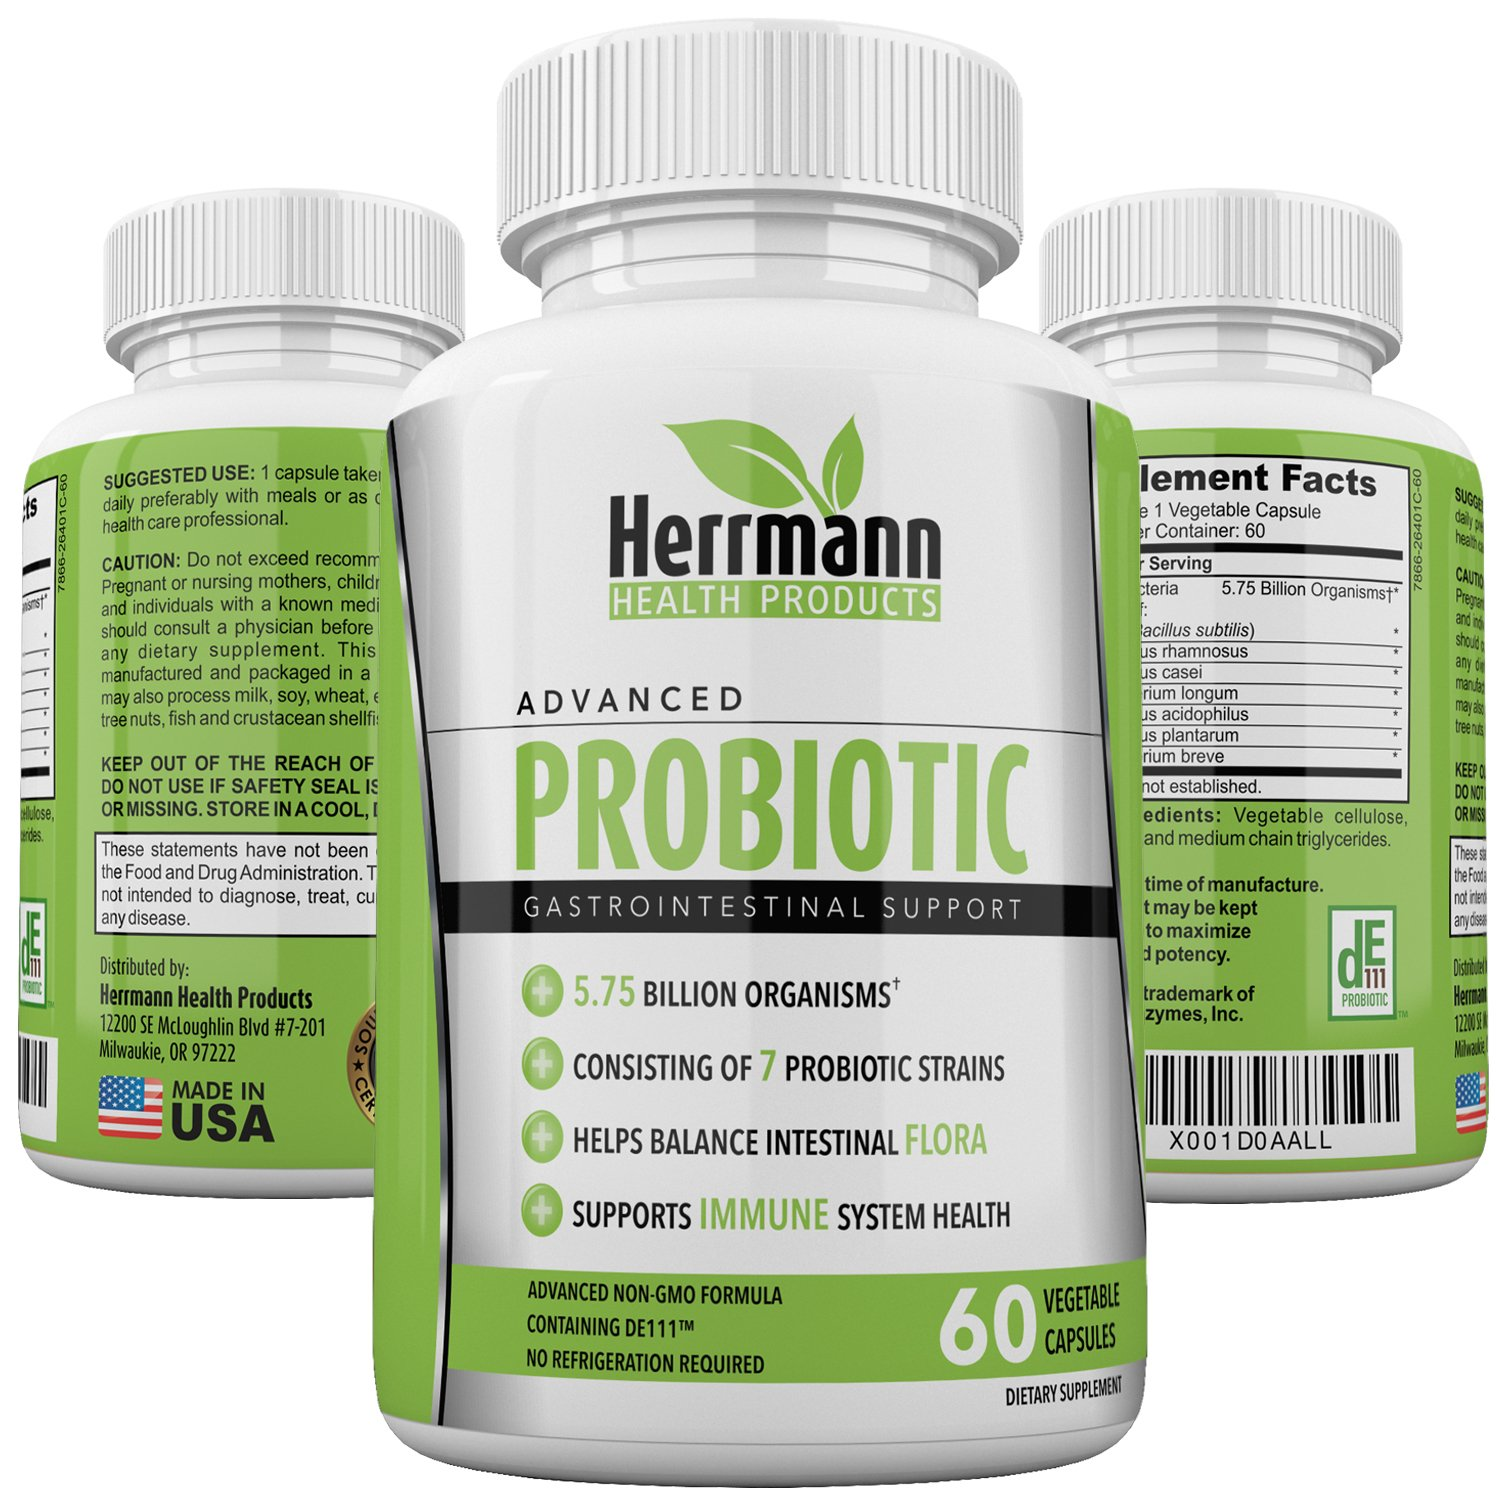 Probiotics by Herrmann Health Products | Probiotic for Men and Women | High Potency 7 Strain Formula | 5.75 Billion Organisms per Capsule | Non-GMO Consisting of DE111™ | GMP Certified 60 Capsules